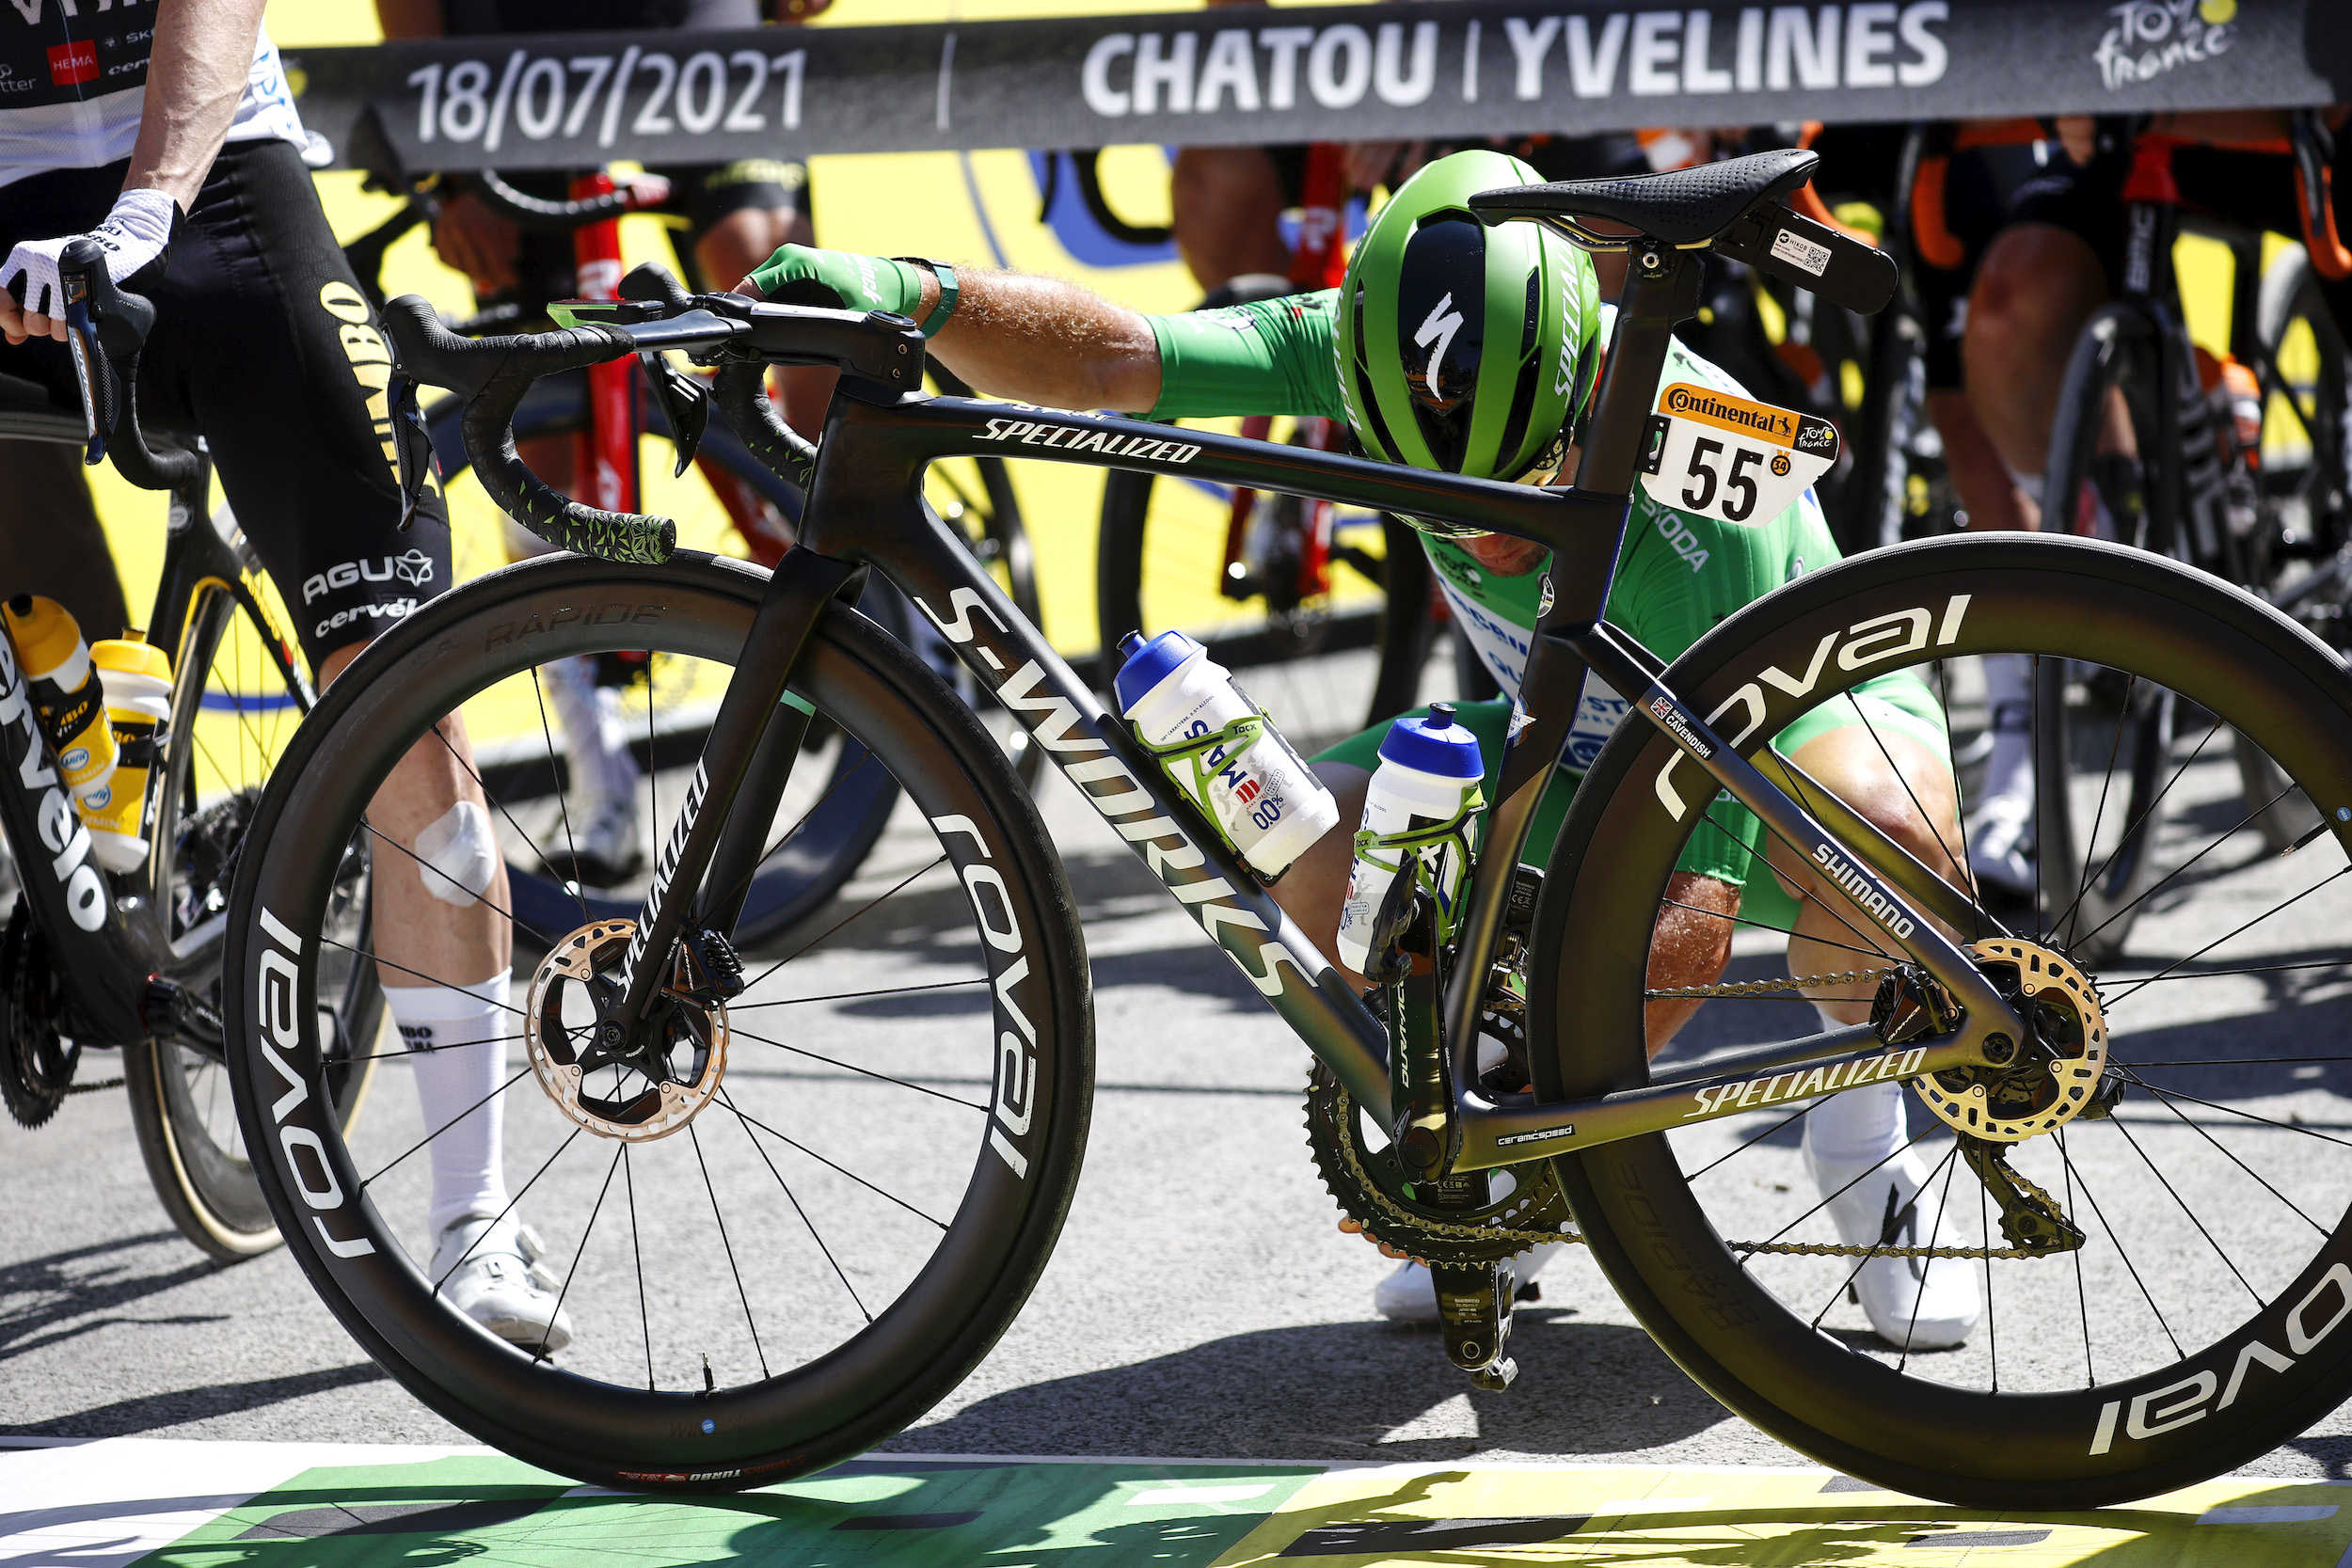 Mark Cavendish making last minute changes to his bike on stage 21 of the 2021 Tour de France